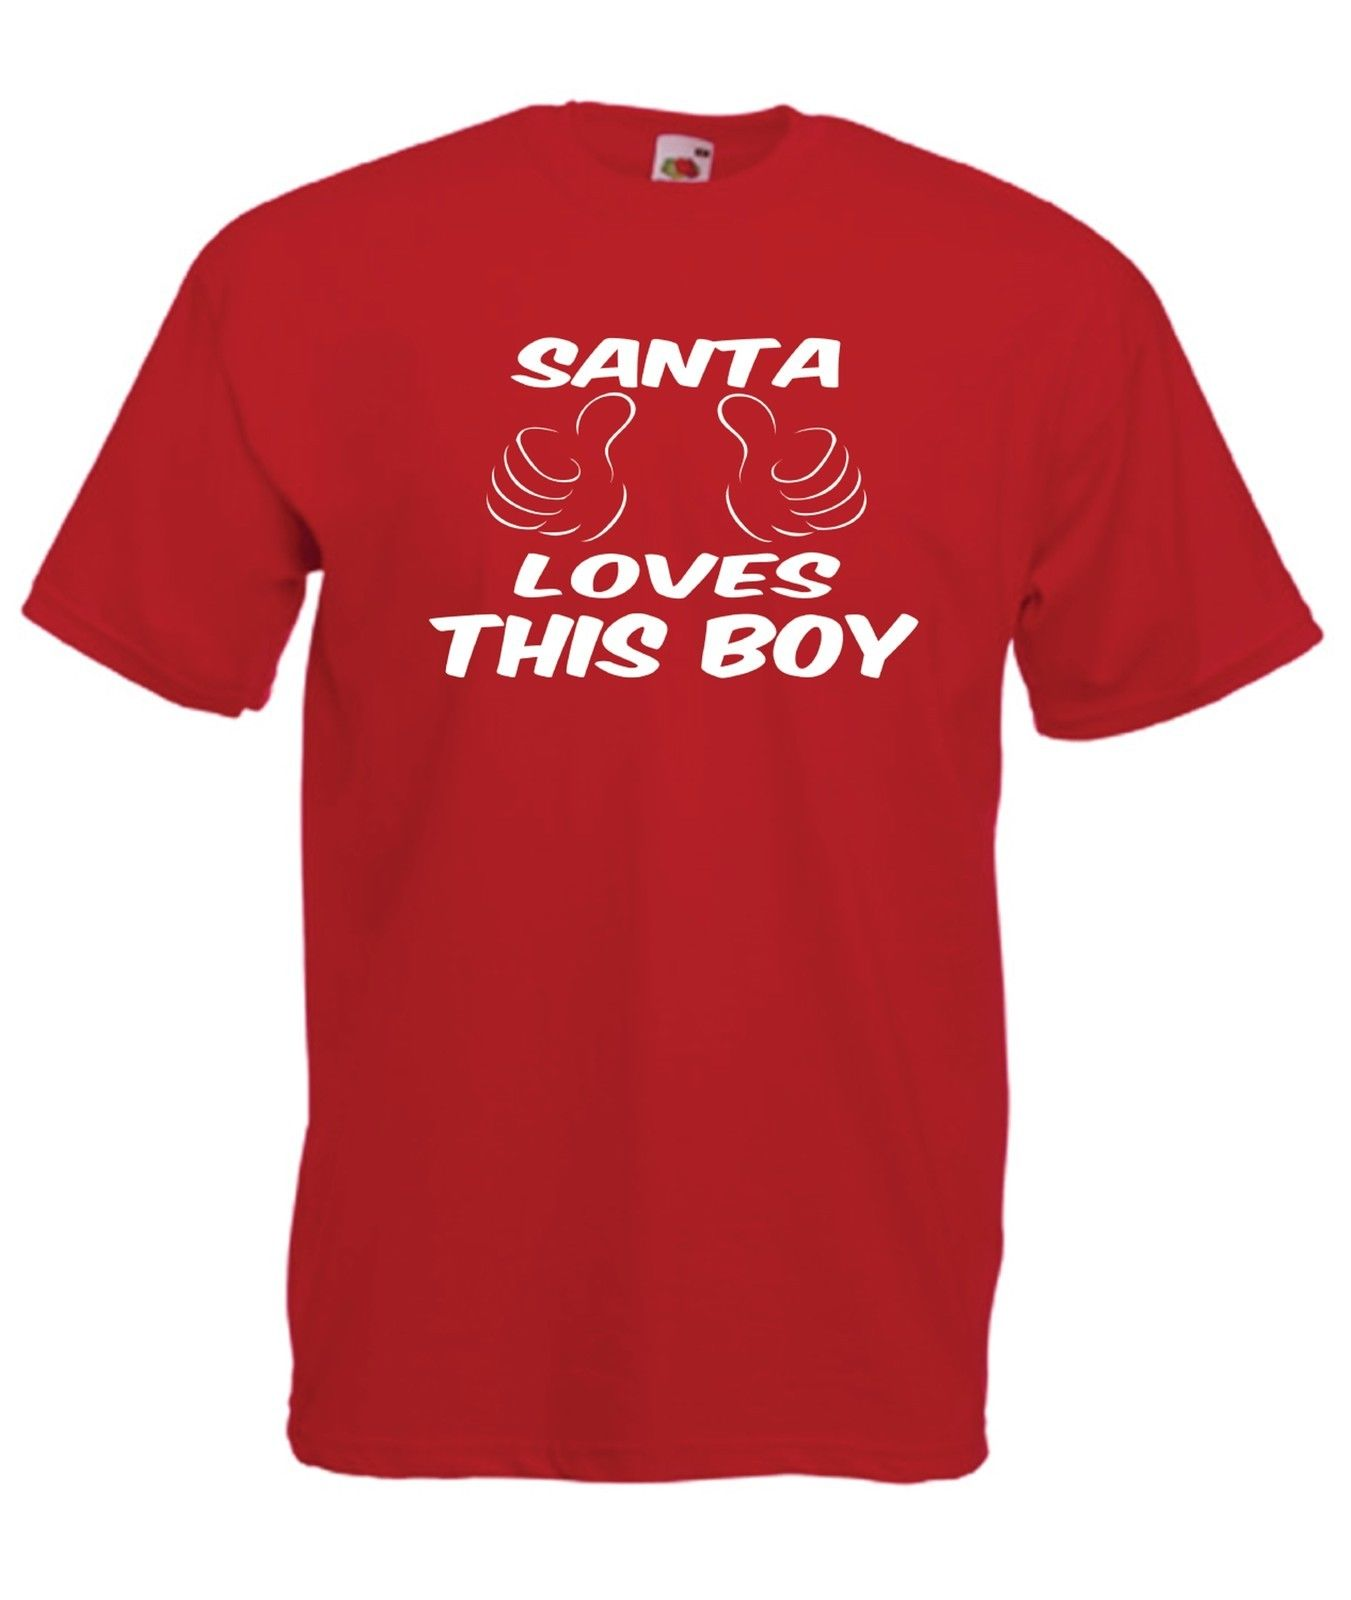 SANTA BOY Christmas Present NEW Xmas Birthday Gift Ideas Boys Girls Top T SHIRT Shirt Hipster Harajuku Brand Clothing T-Shirt